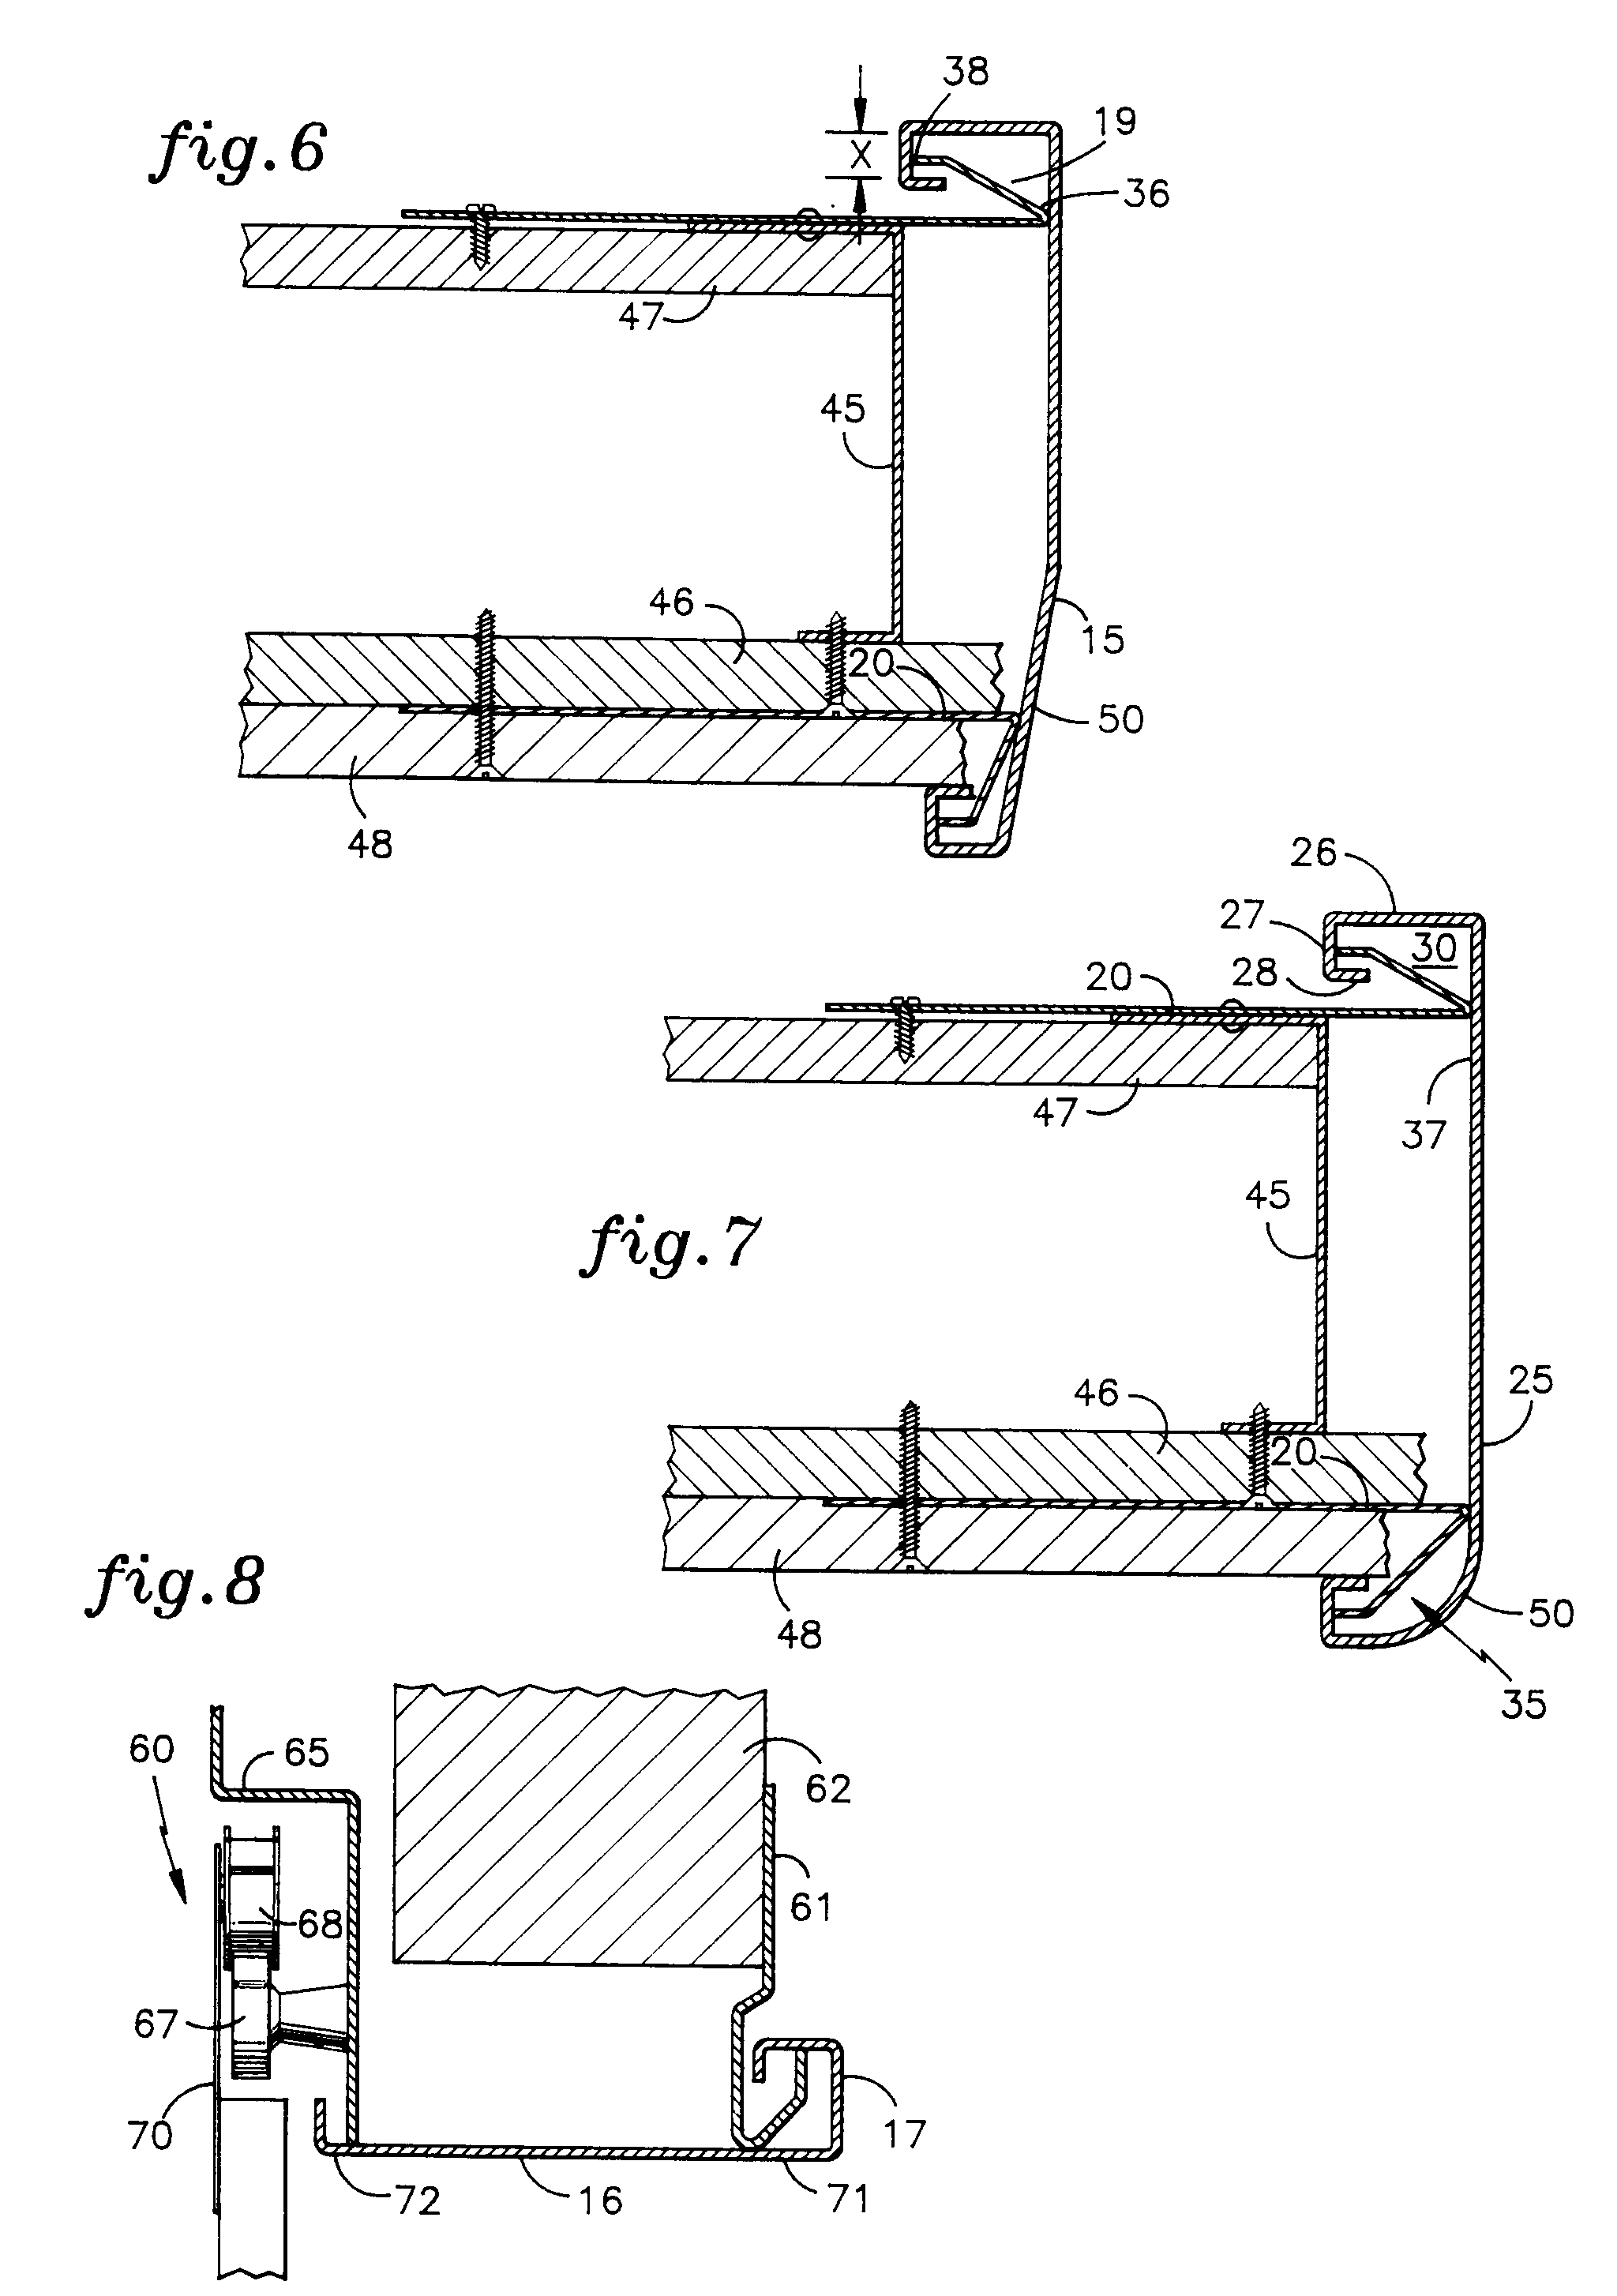 Home elevator dimensions - Patent Drawing